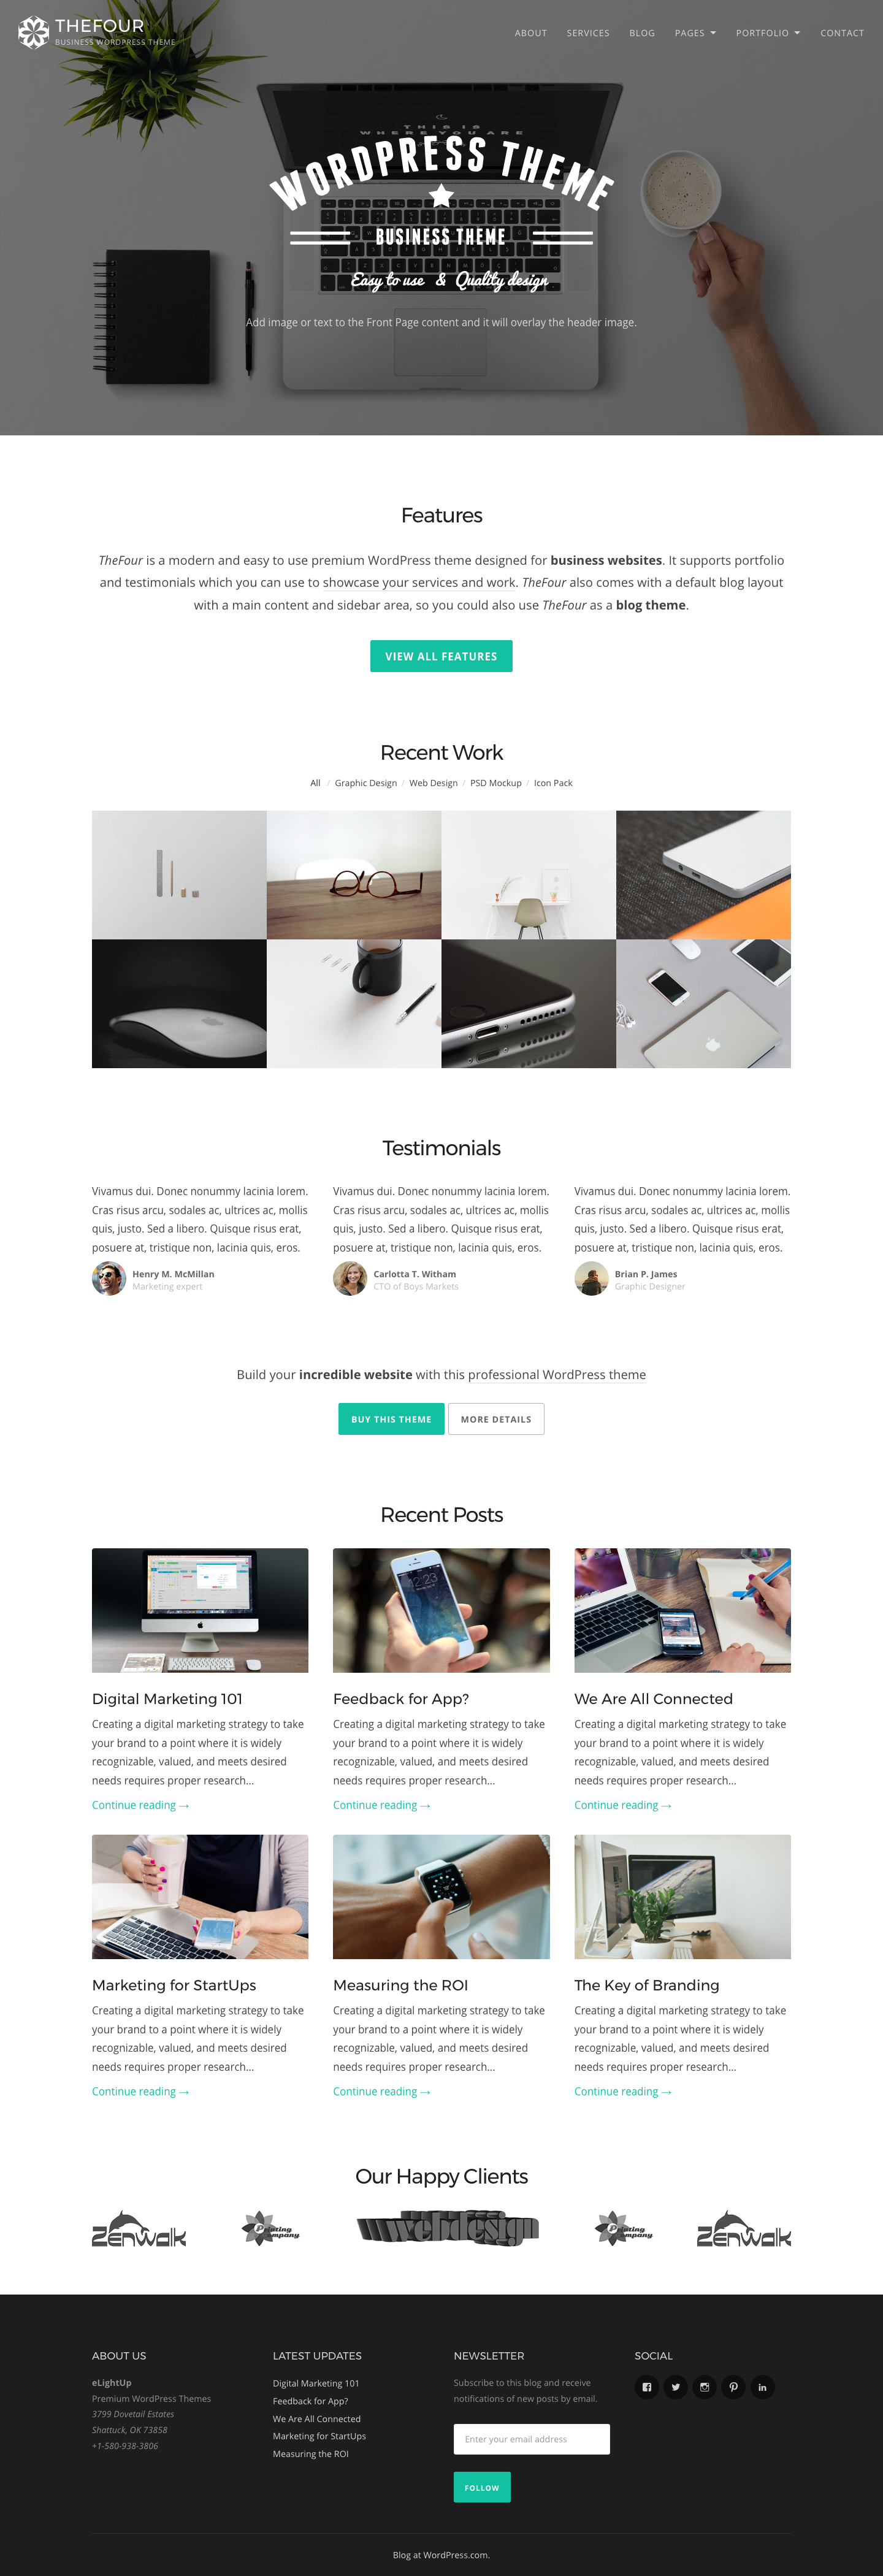 TheFour WordPress Theme